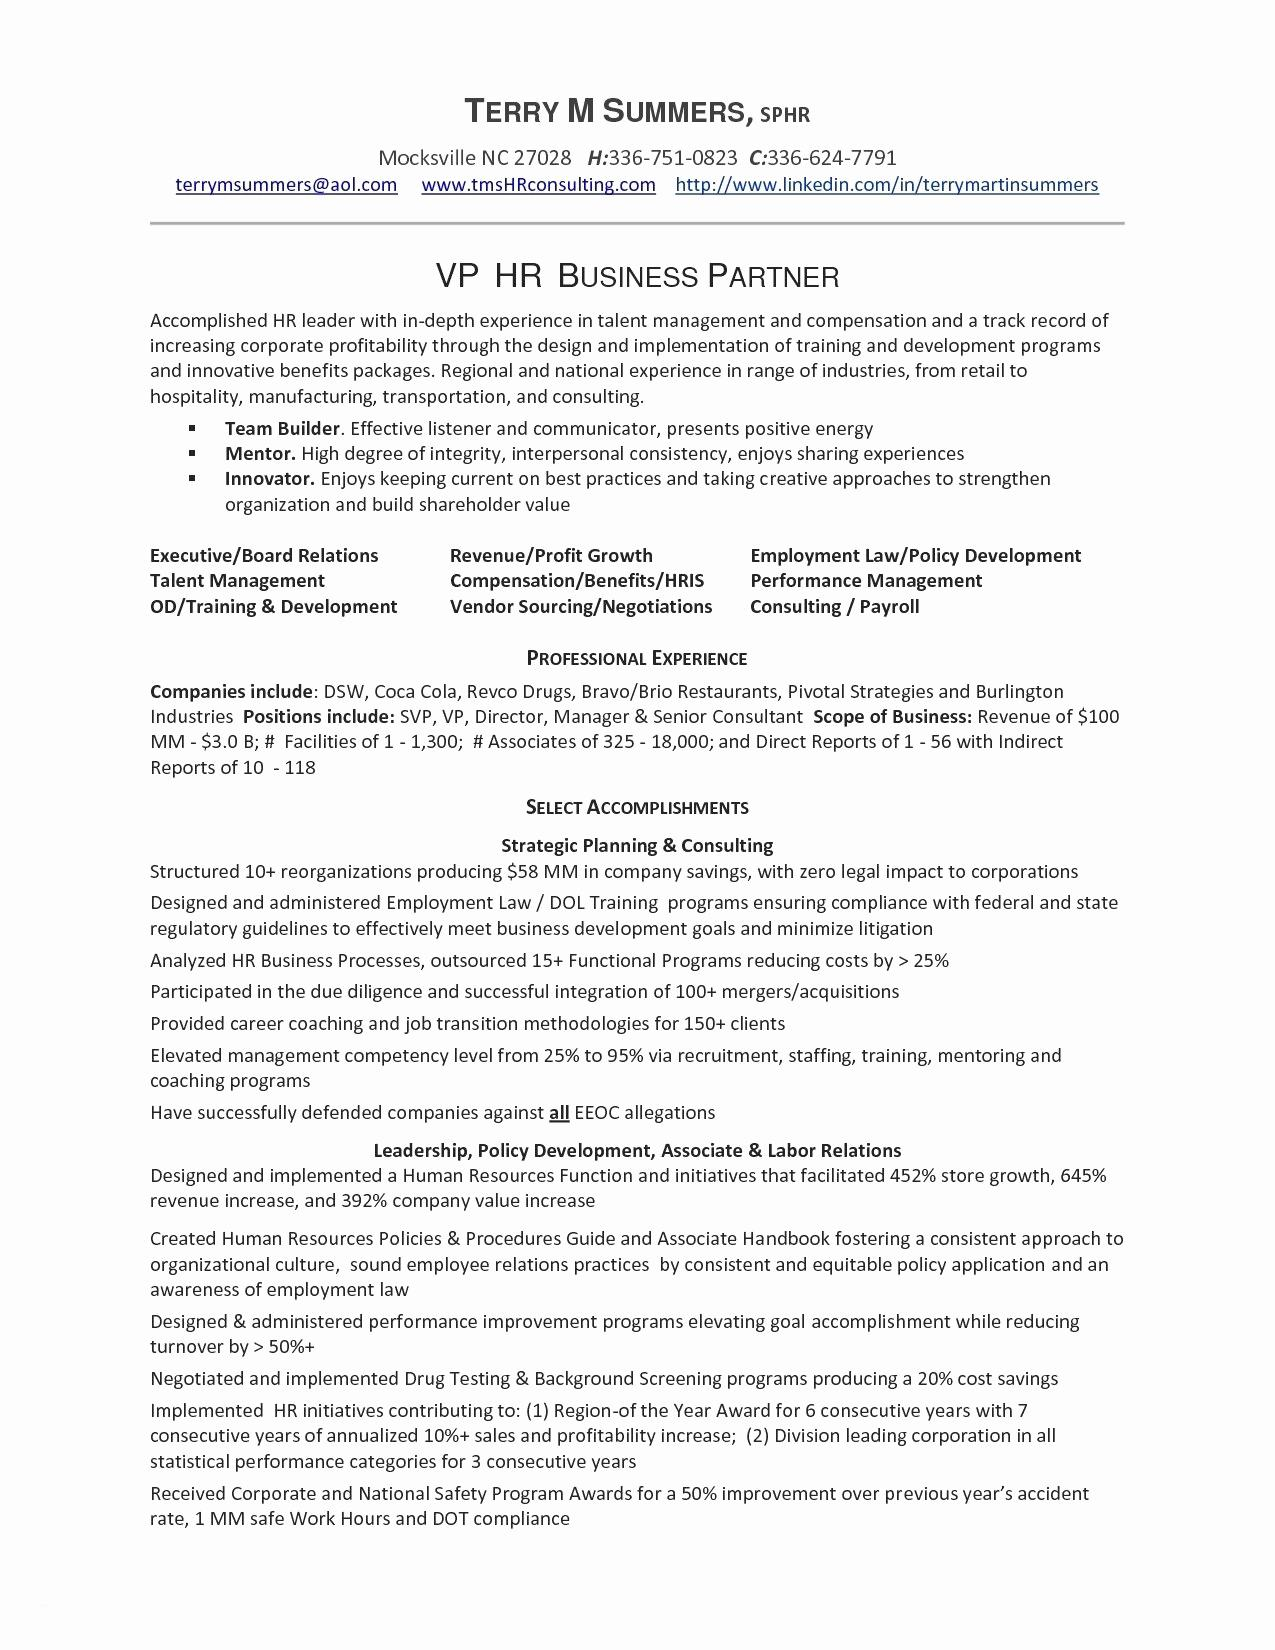 leeds school of business resume template Collection-47 Luxury Sample Cover Letter Administrative assistant 7-k